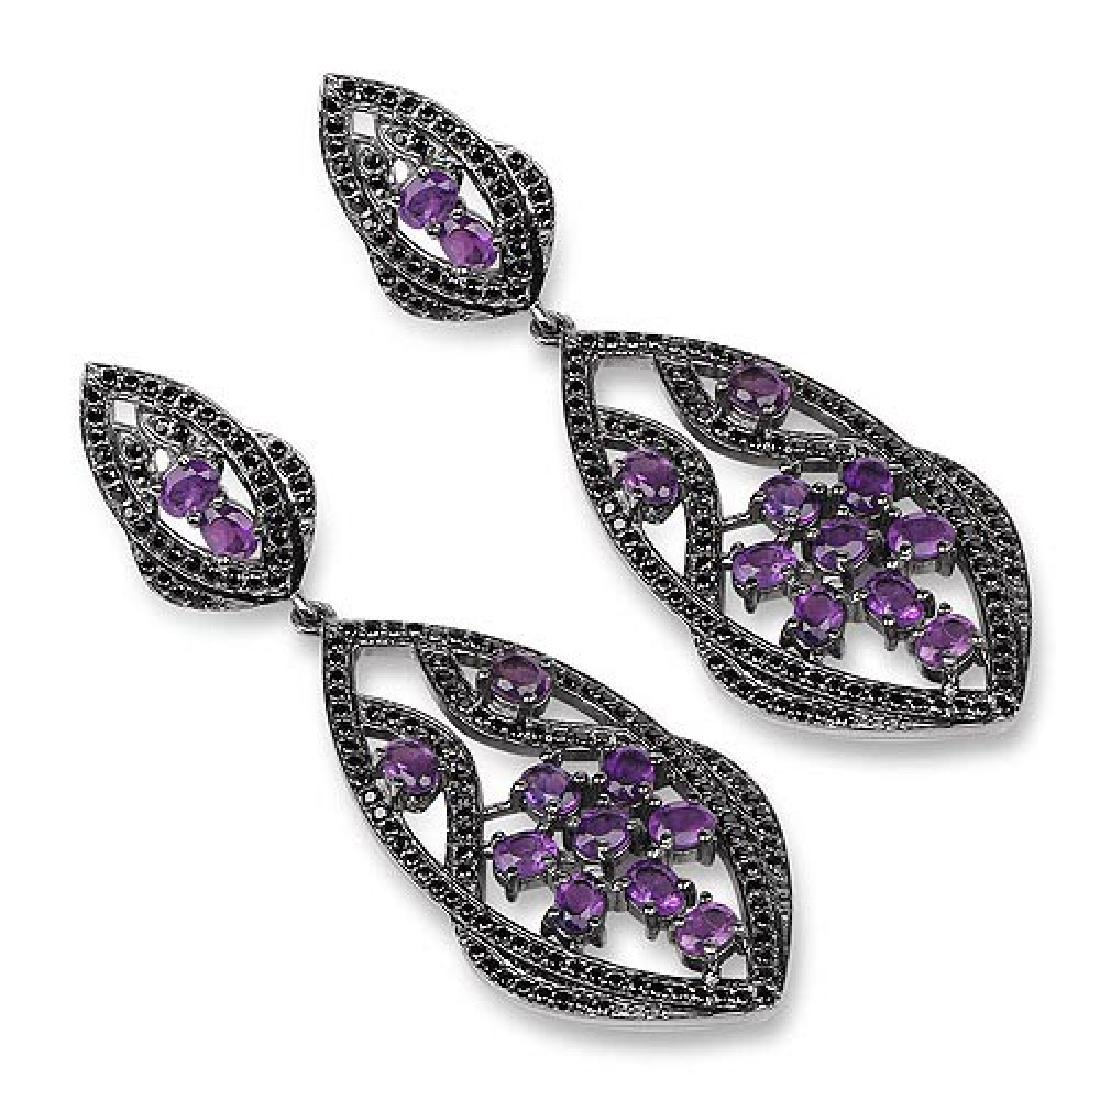 5.74 Carat Genuine Amethyst and Black Spinel .925 Sterl